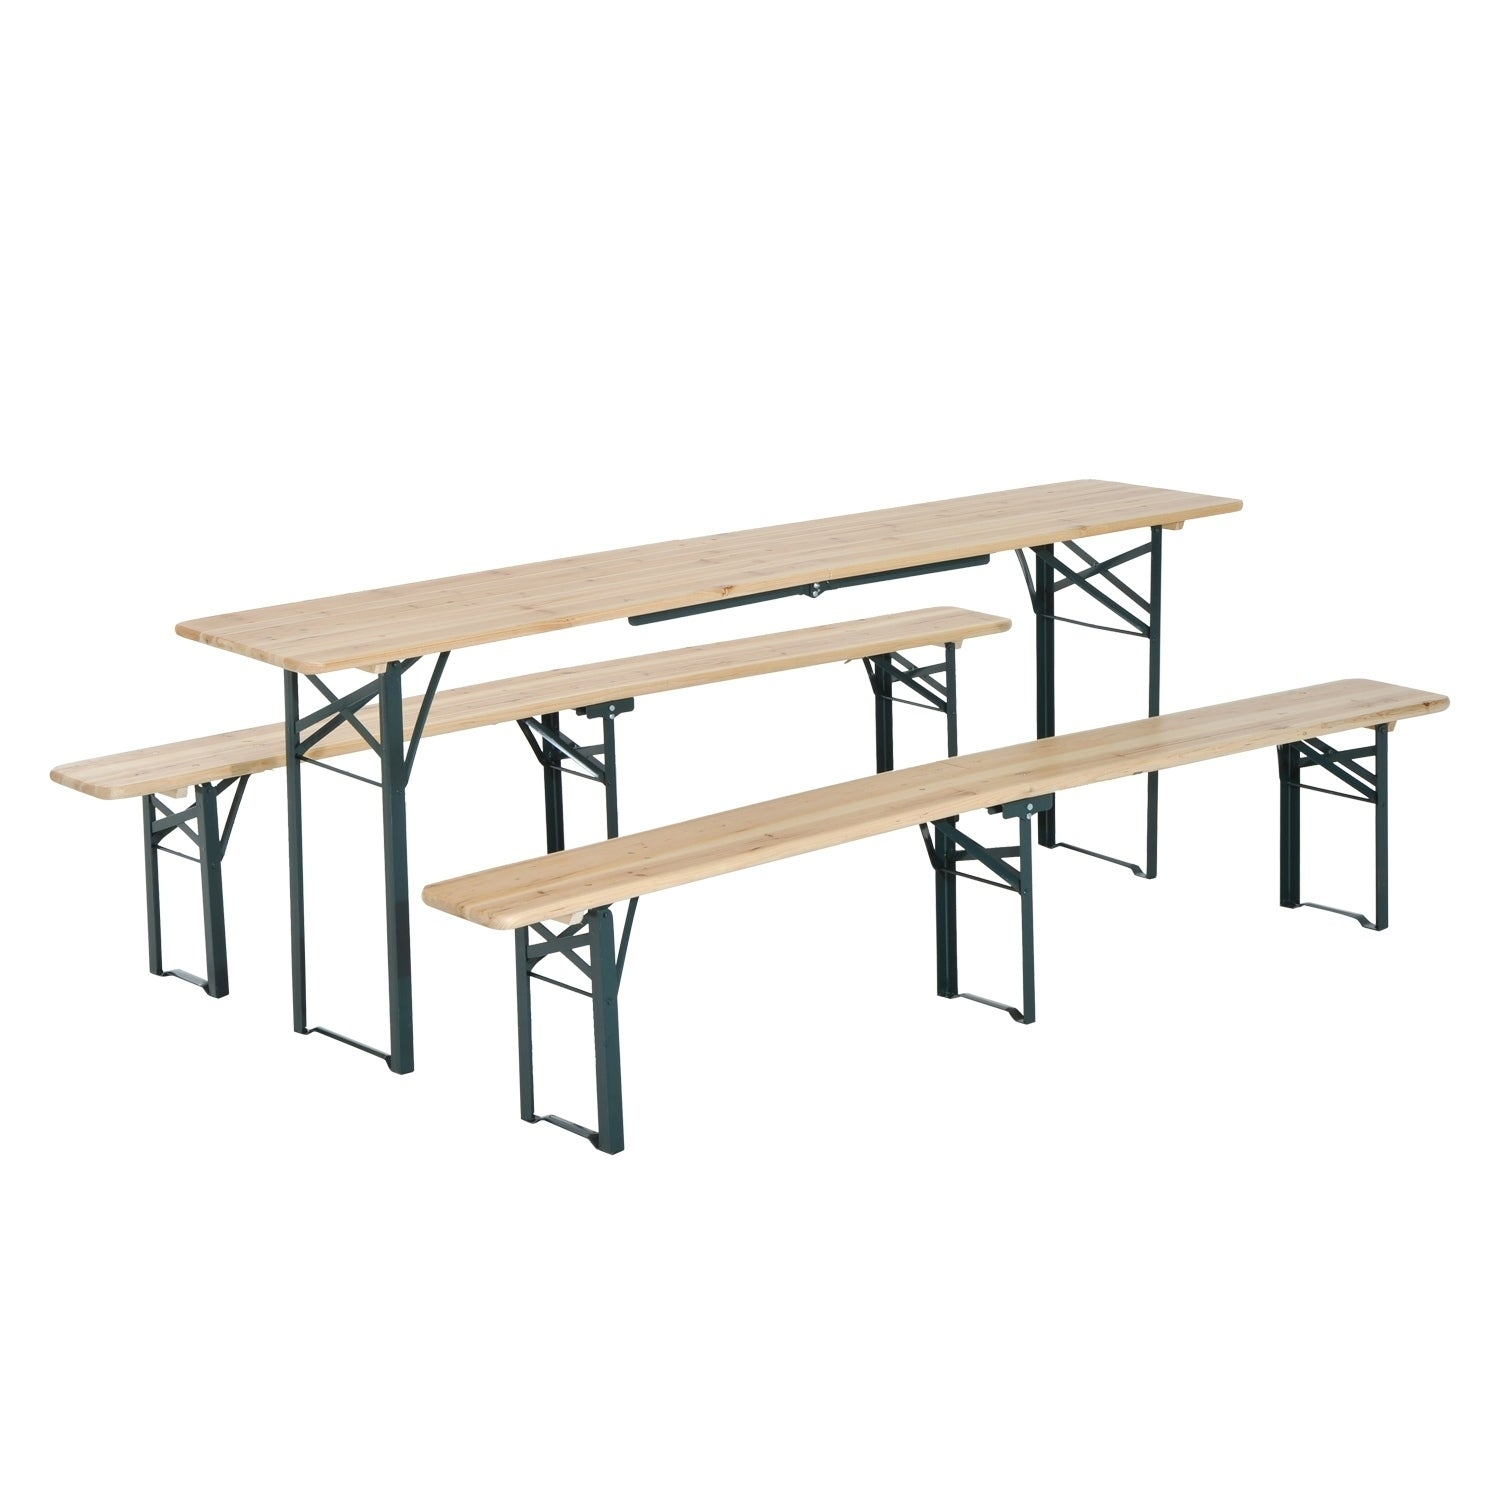 Outsunny 7ft Wooden Folding Picnic Table Set With Benches On Free Shipping Today 18109318